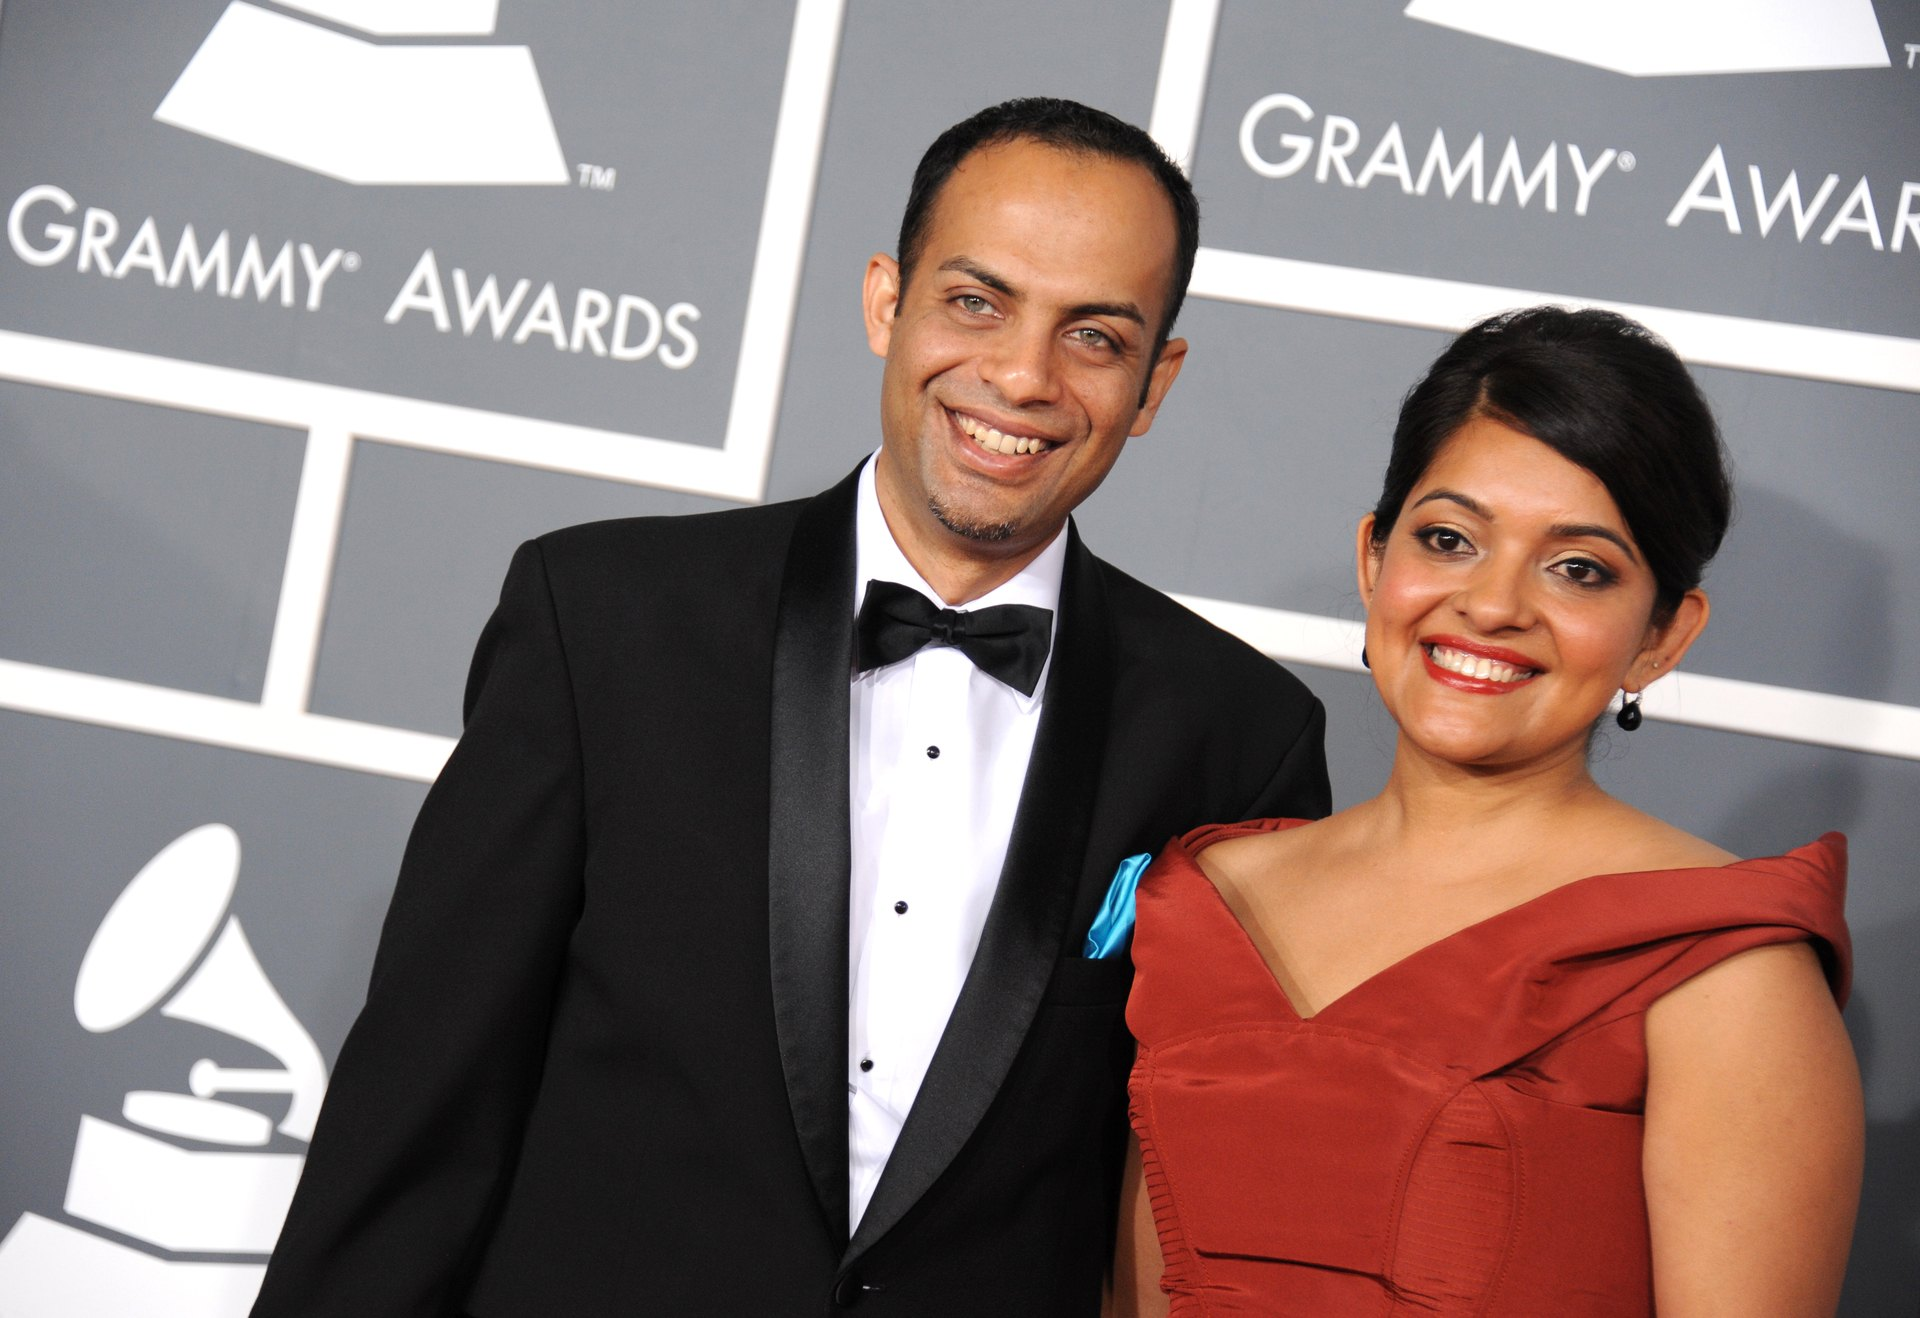 Arun Shenoy, left, and Roshni Mohapatra arrive at the 55th annual Grammy Awards on Sunday, Feb. 10, 2013, in Los Angeles. (Photo by Jordan Strauss/Invision/AP)